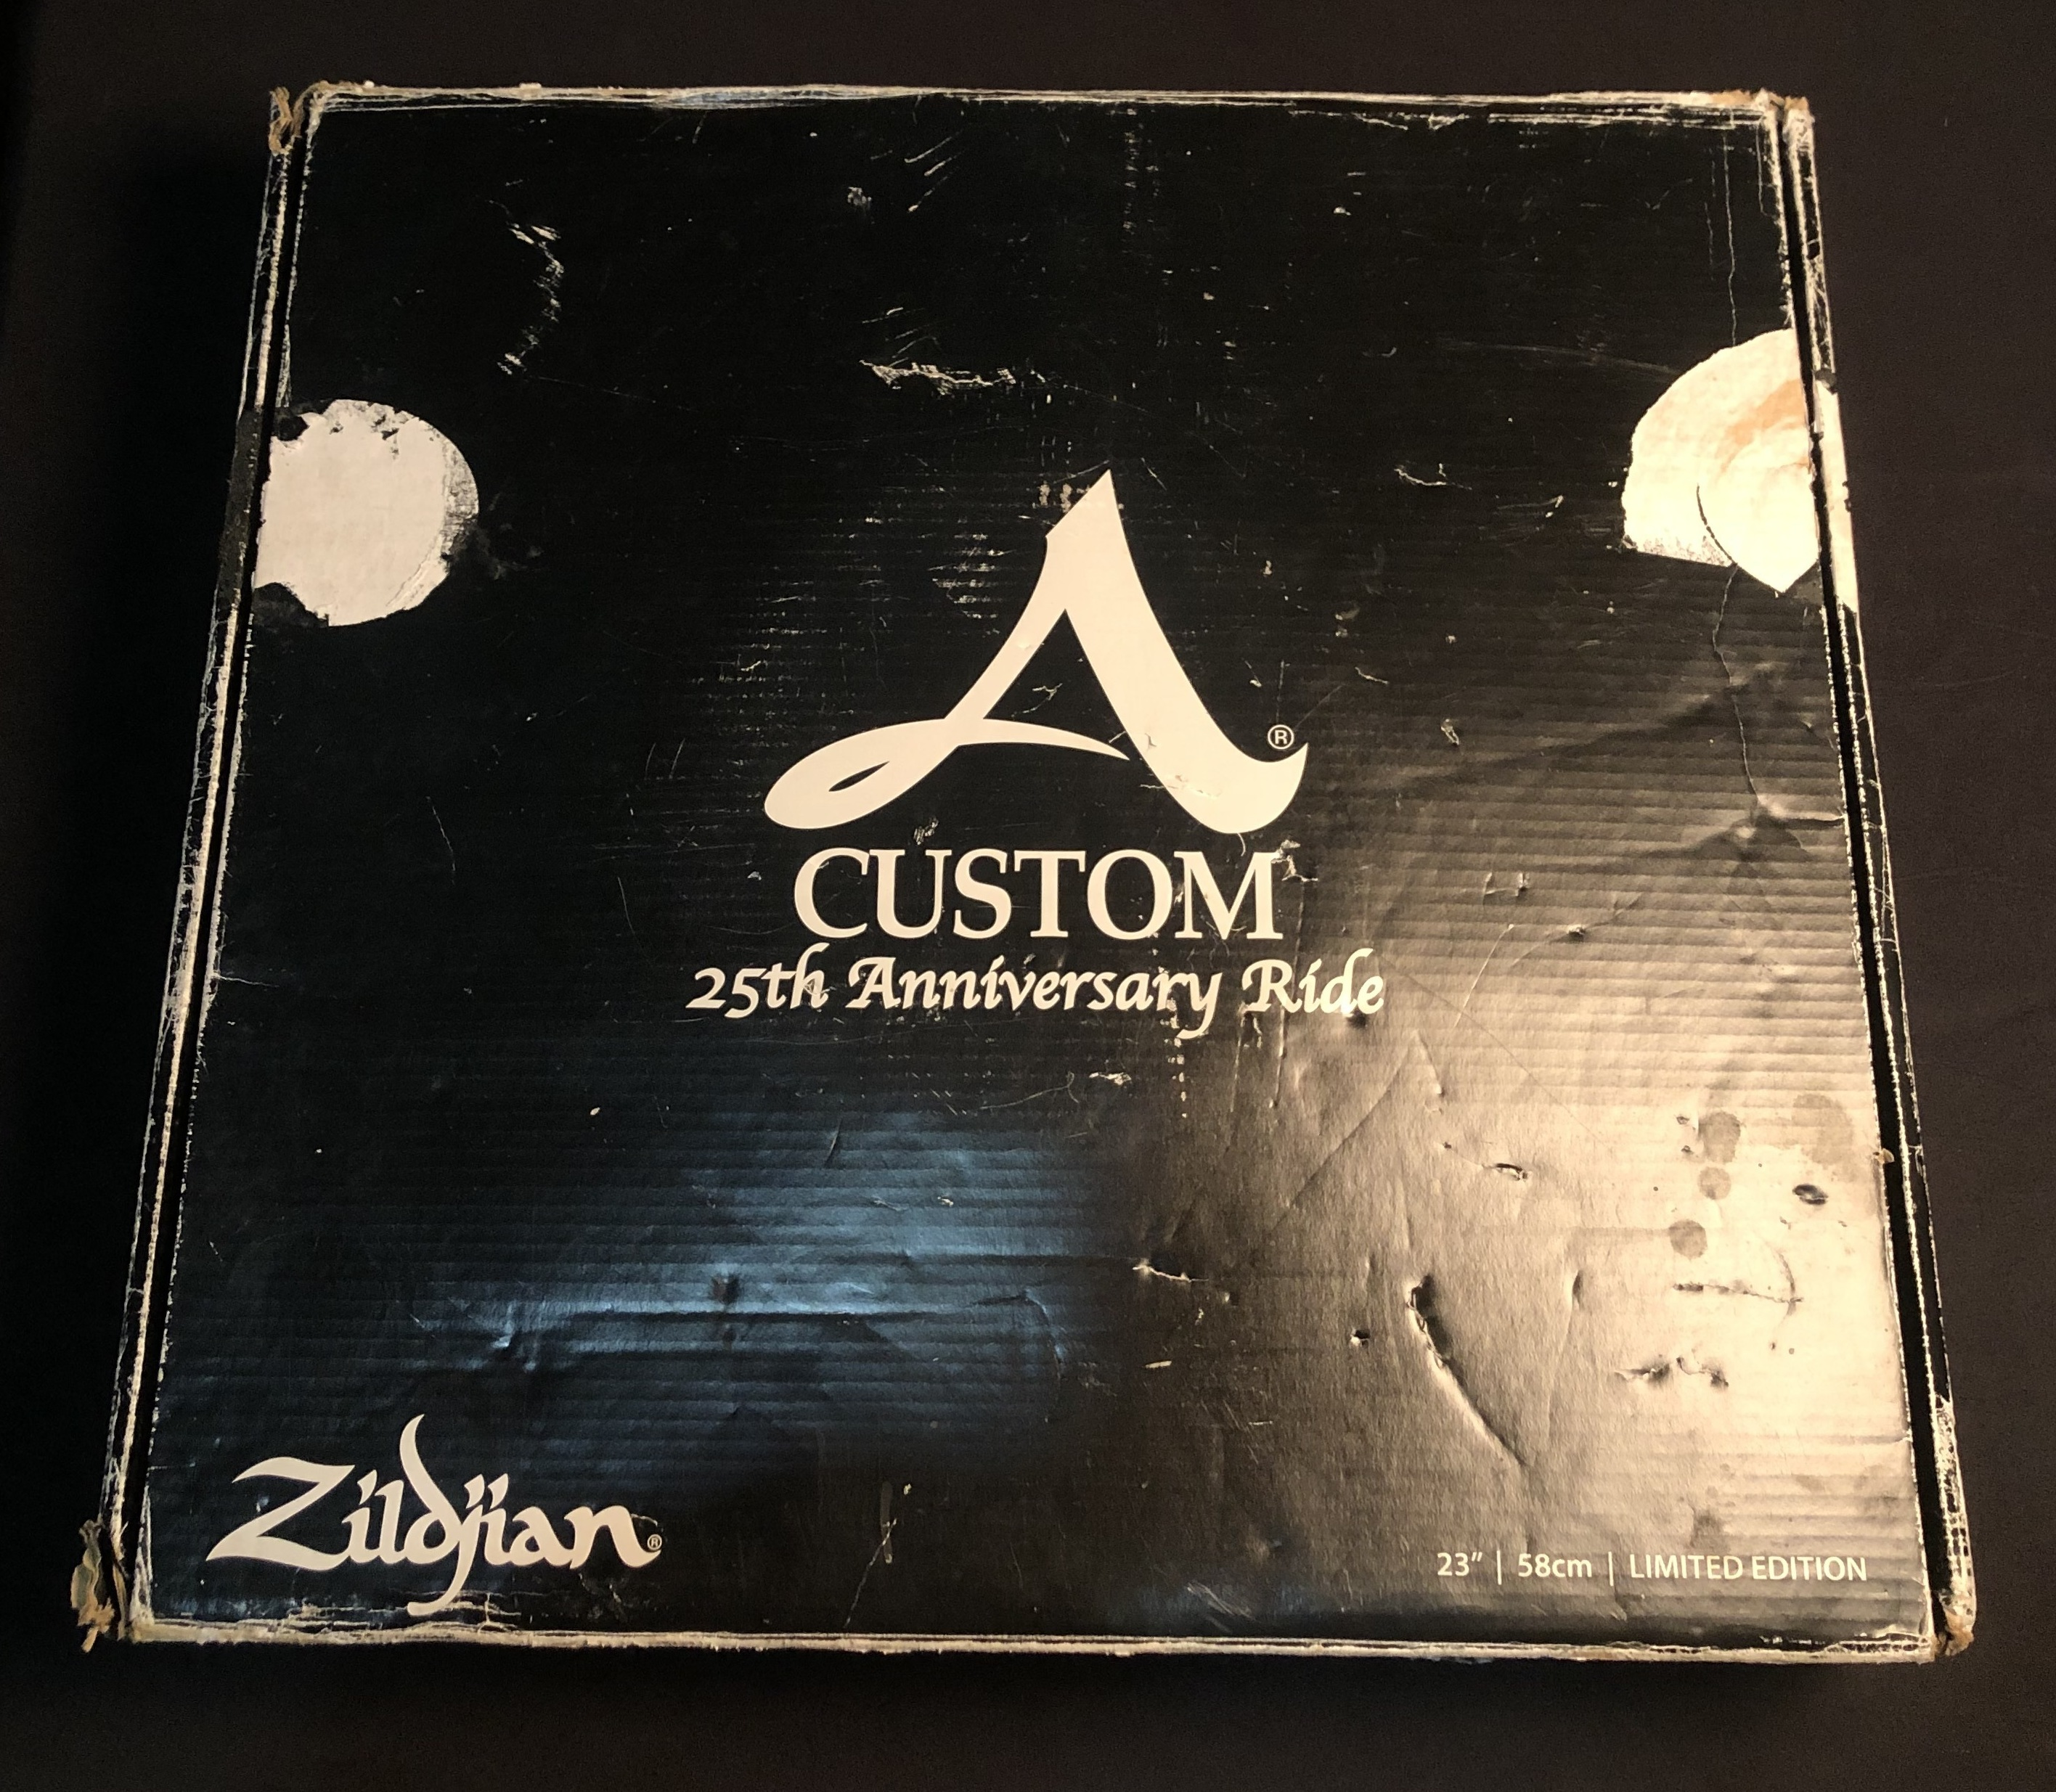 ZILDJIAN - 25th Anniversary Limited Edition a Custom Ride Cymbal 23